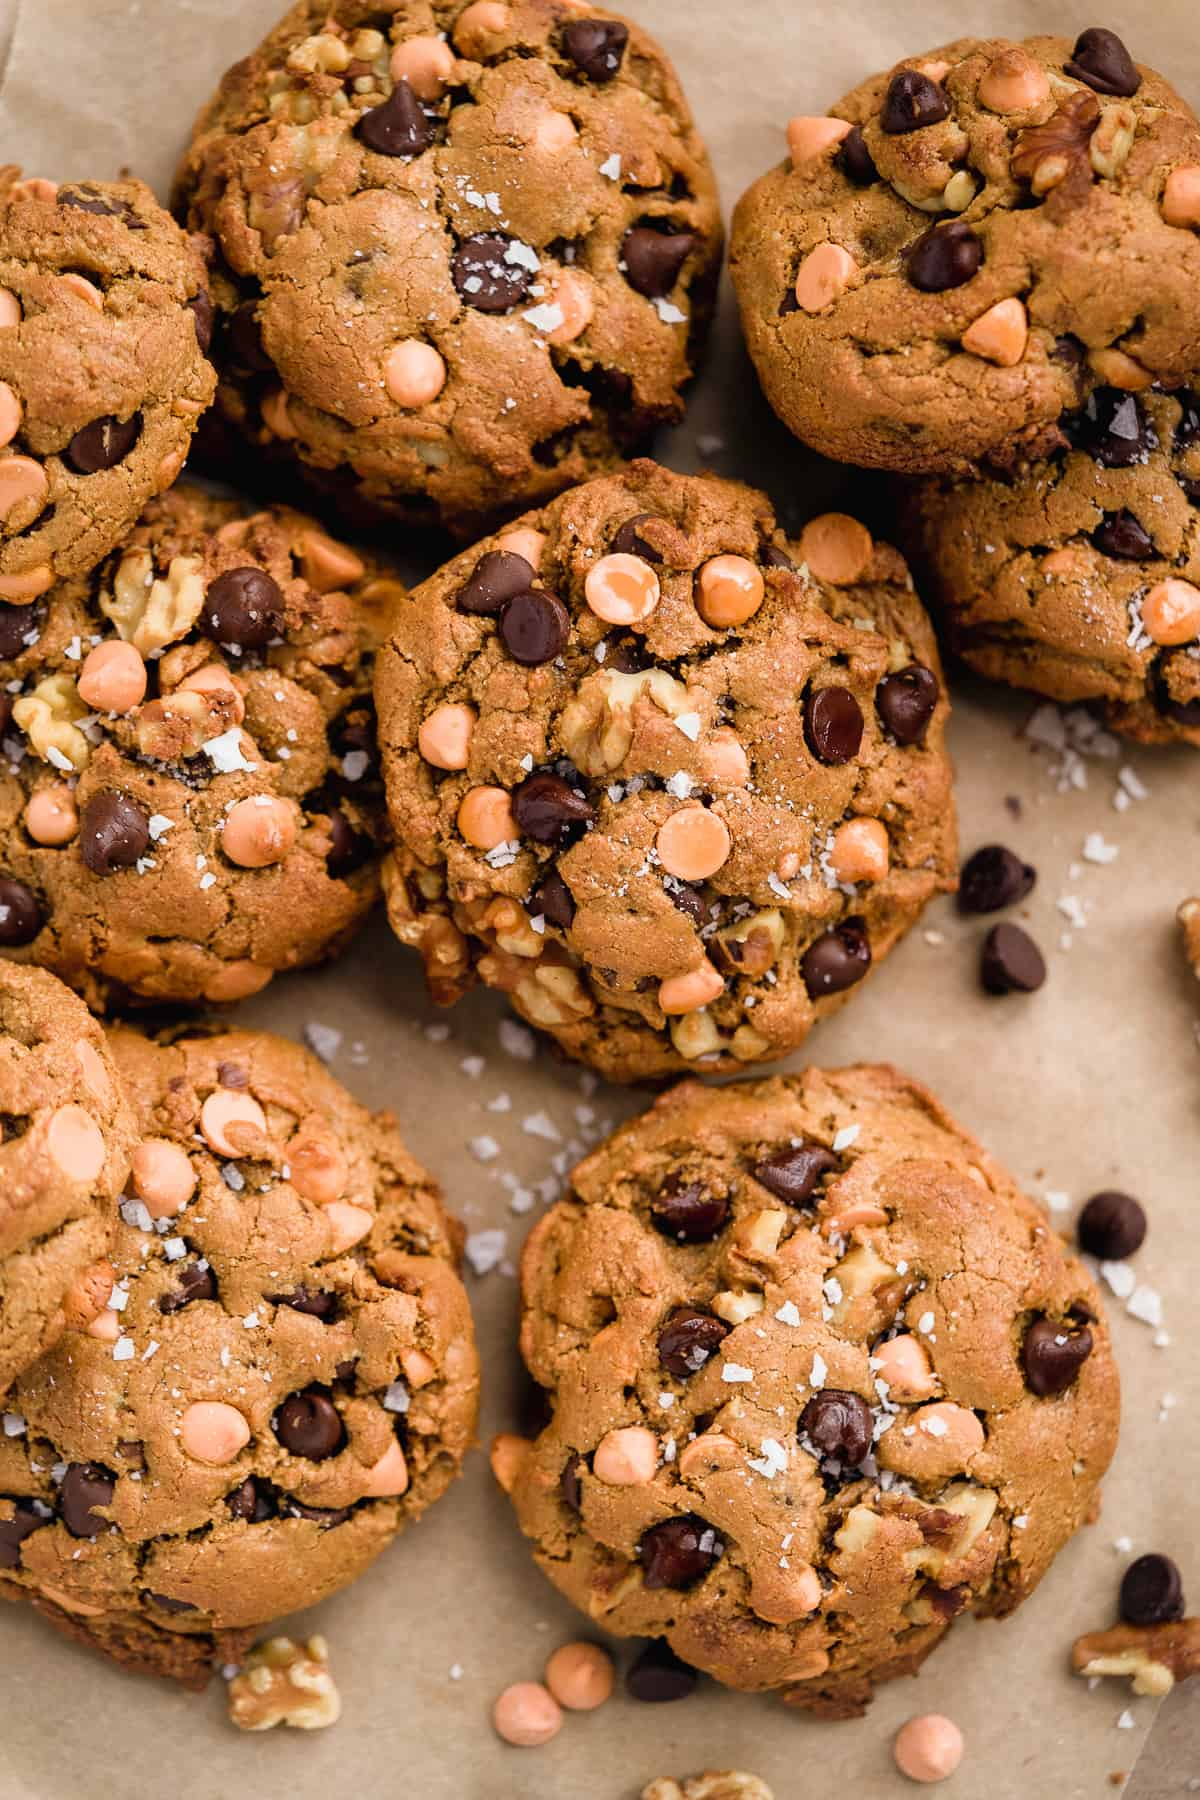 Closeup photo of 8-9 butterscotch chocolate chip cookies scattered on parchment paper.  Chocolate chips and sea salt are sprinkled nearby.